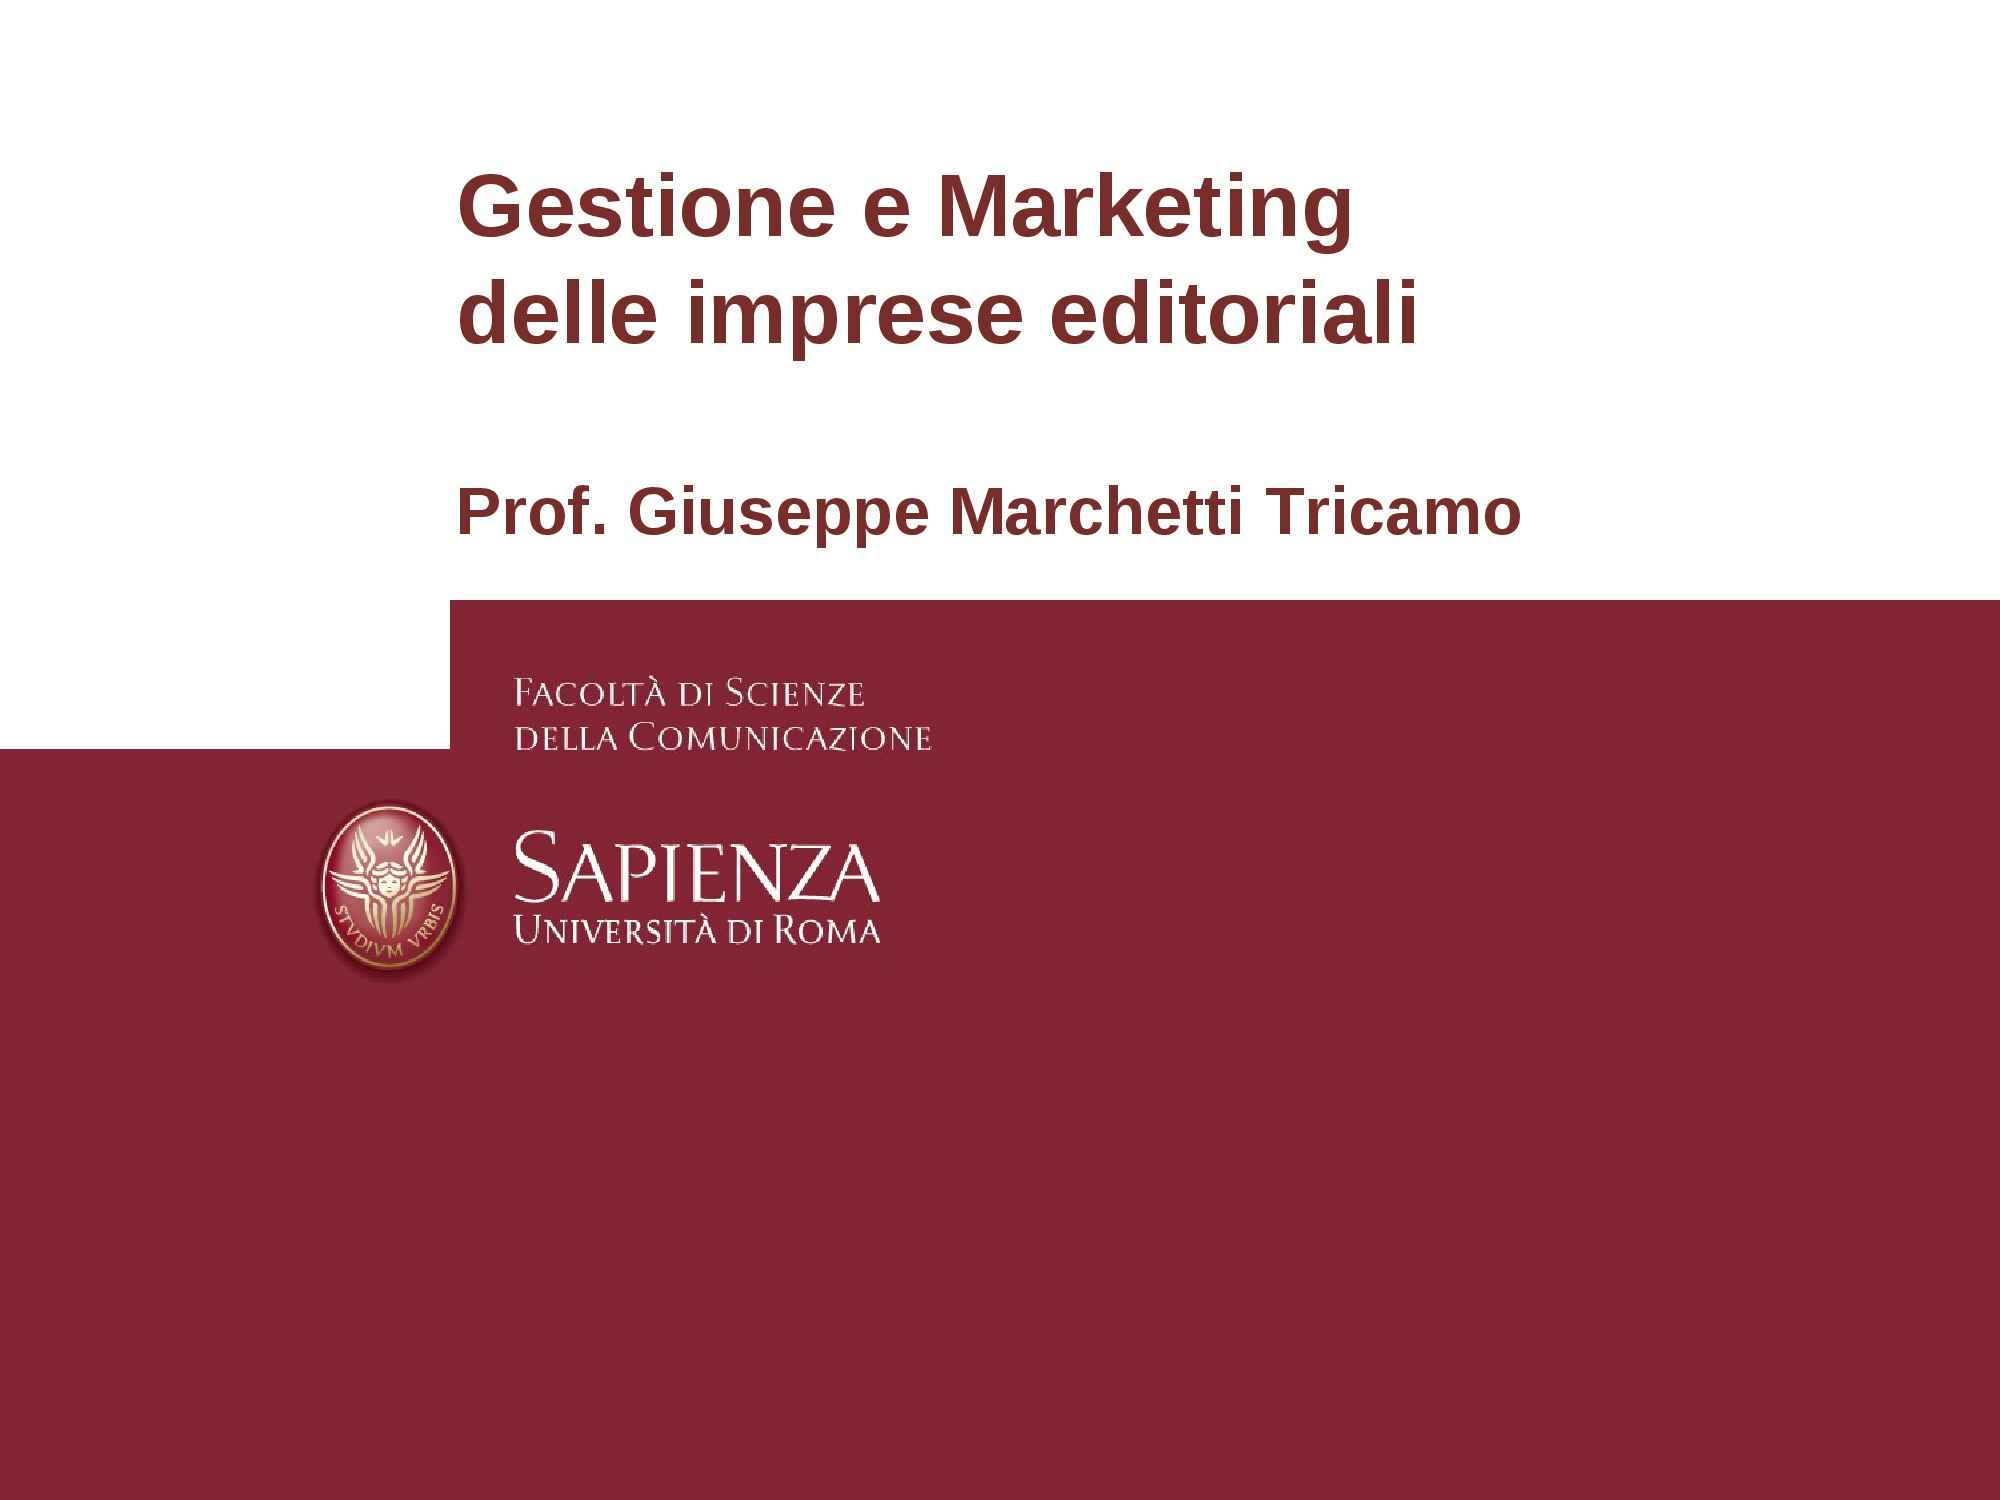 Imprese editoriali - Gestione e marketing